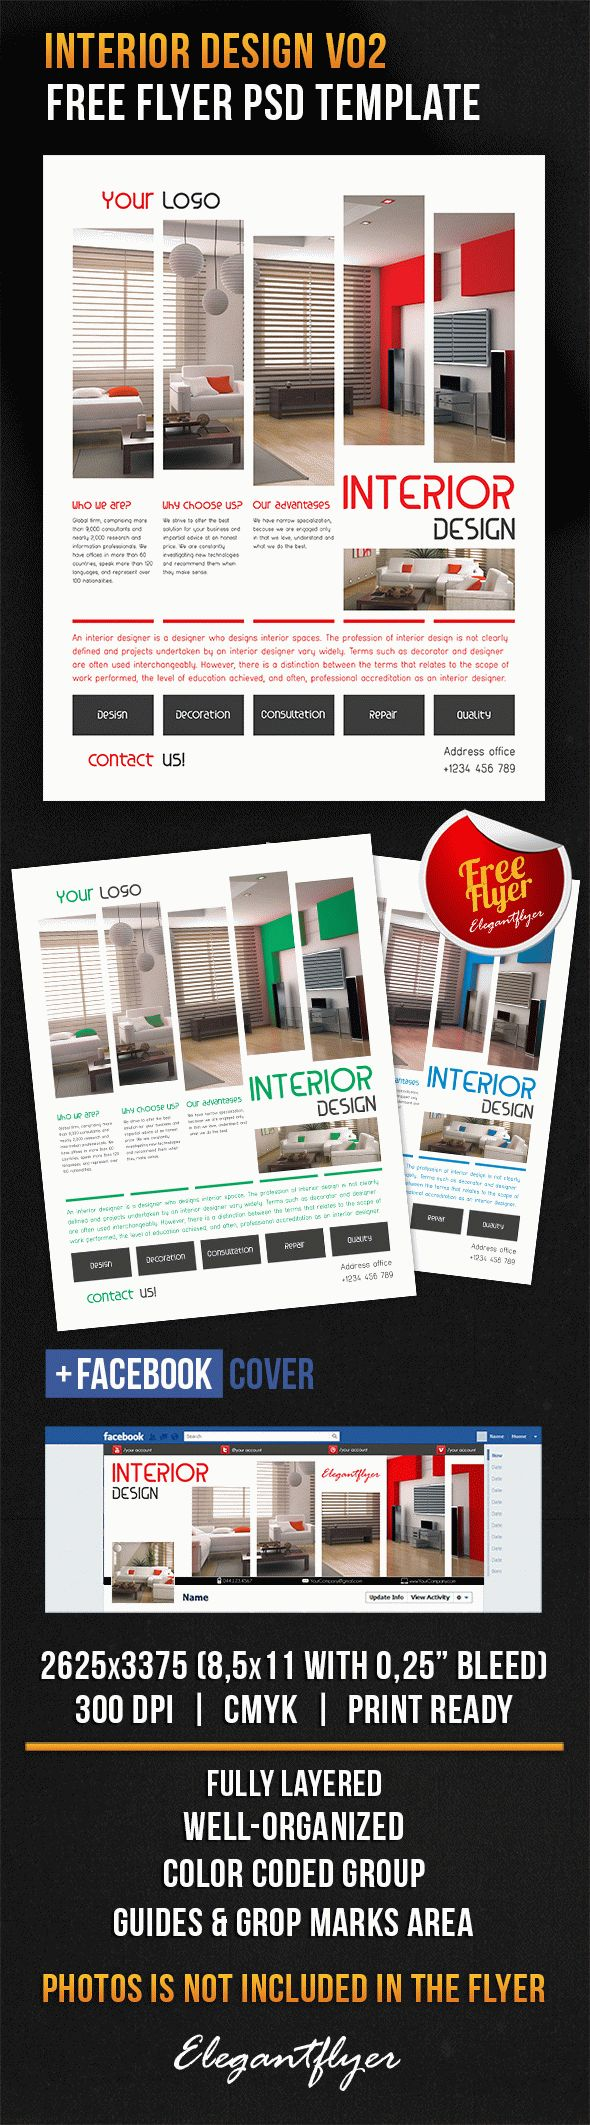 Interior Design V02 Free Flyer PSD Template Facebook Cover